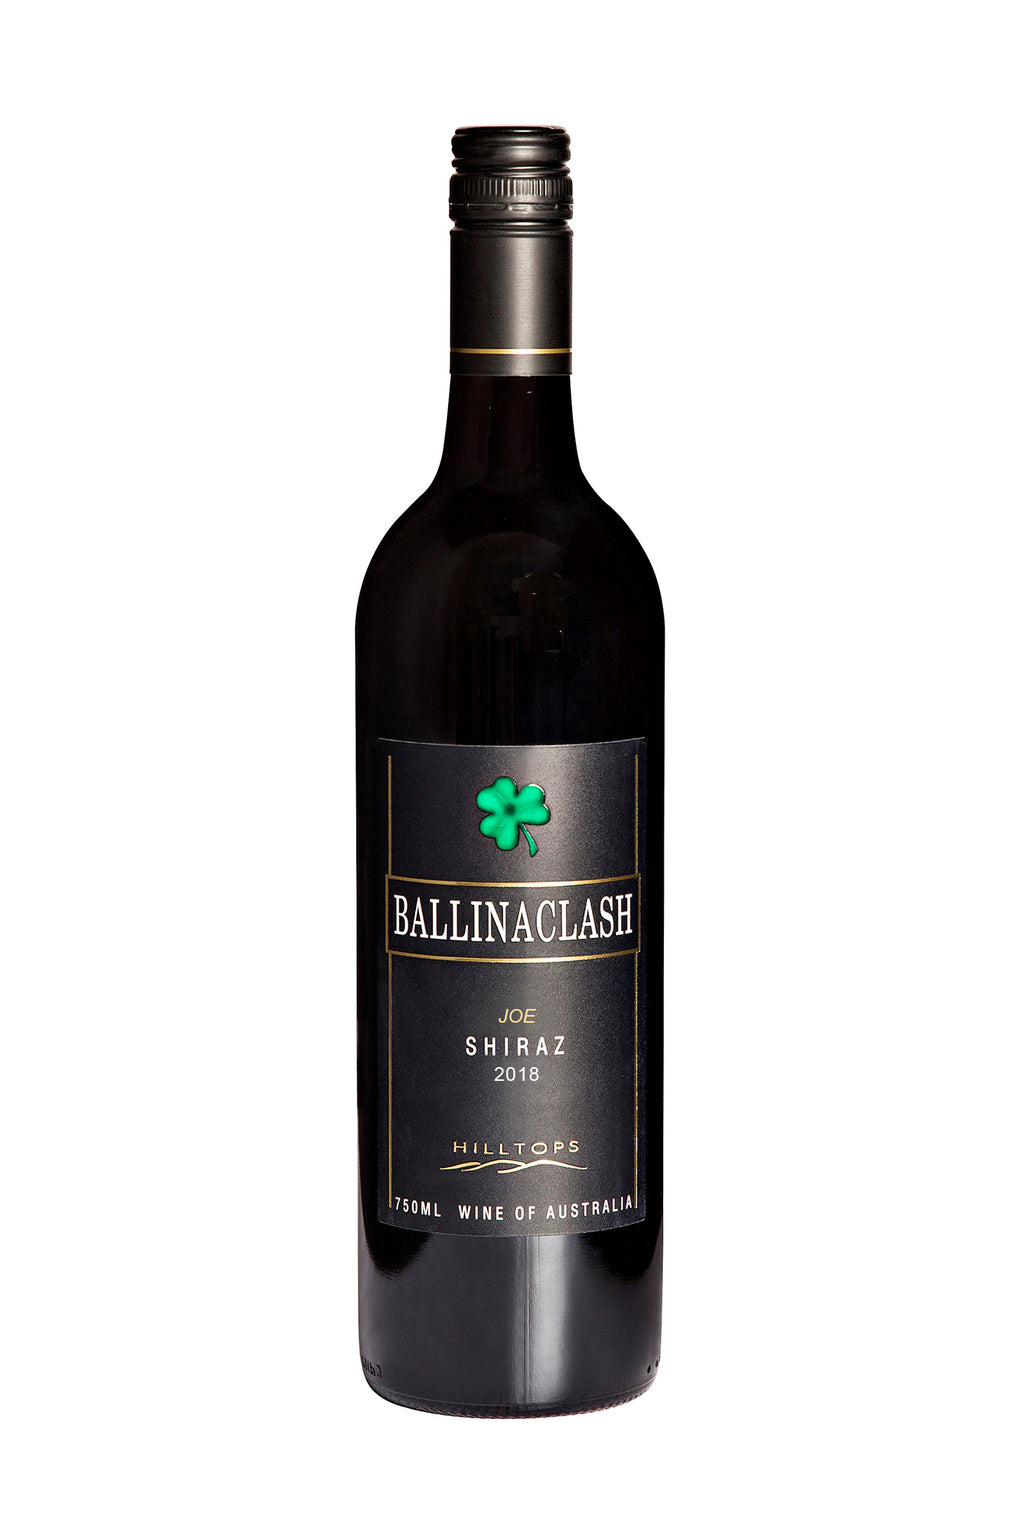 Ballinaclash Hilltops Joe Shiraz 2018